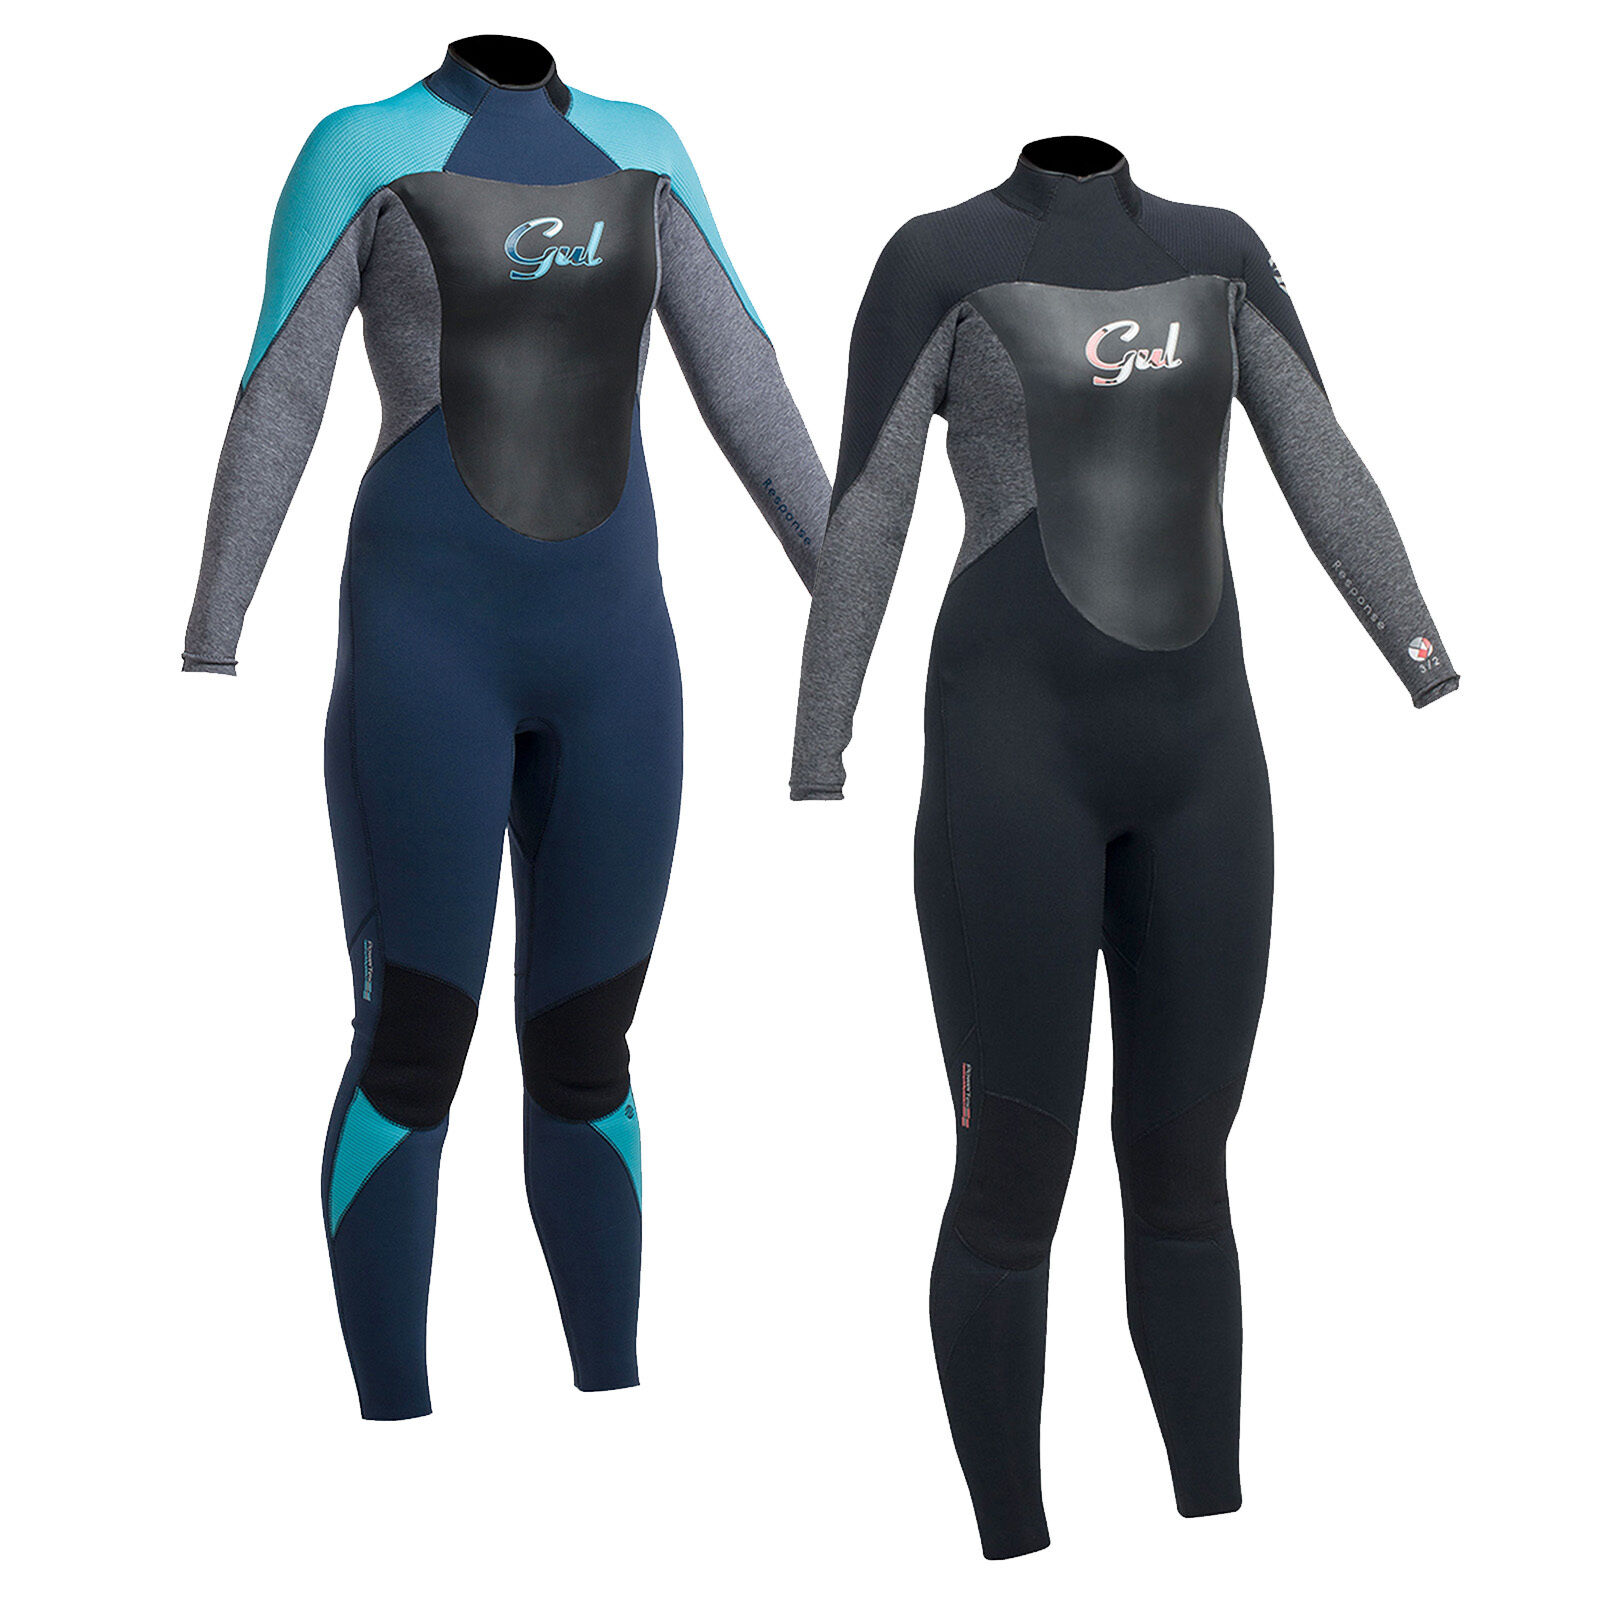 Gul Response Ladies 3 2mm BS Neoprene Wetsuit for Surfing   Sailing   Sit on Top